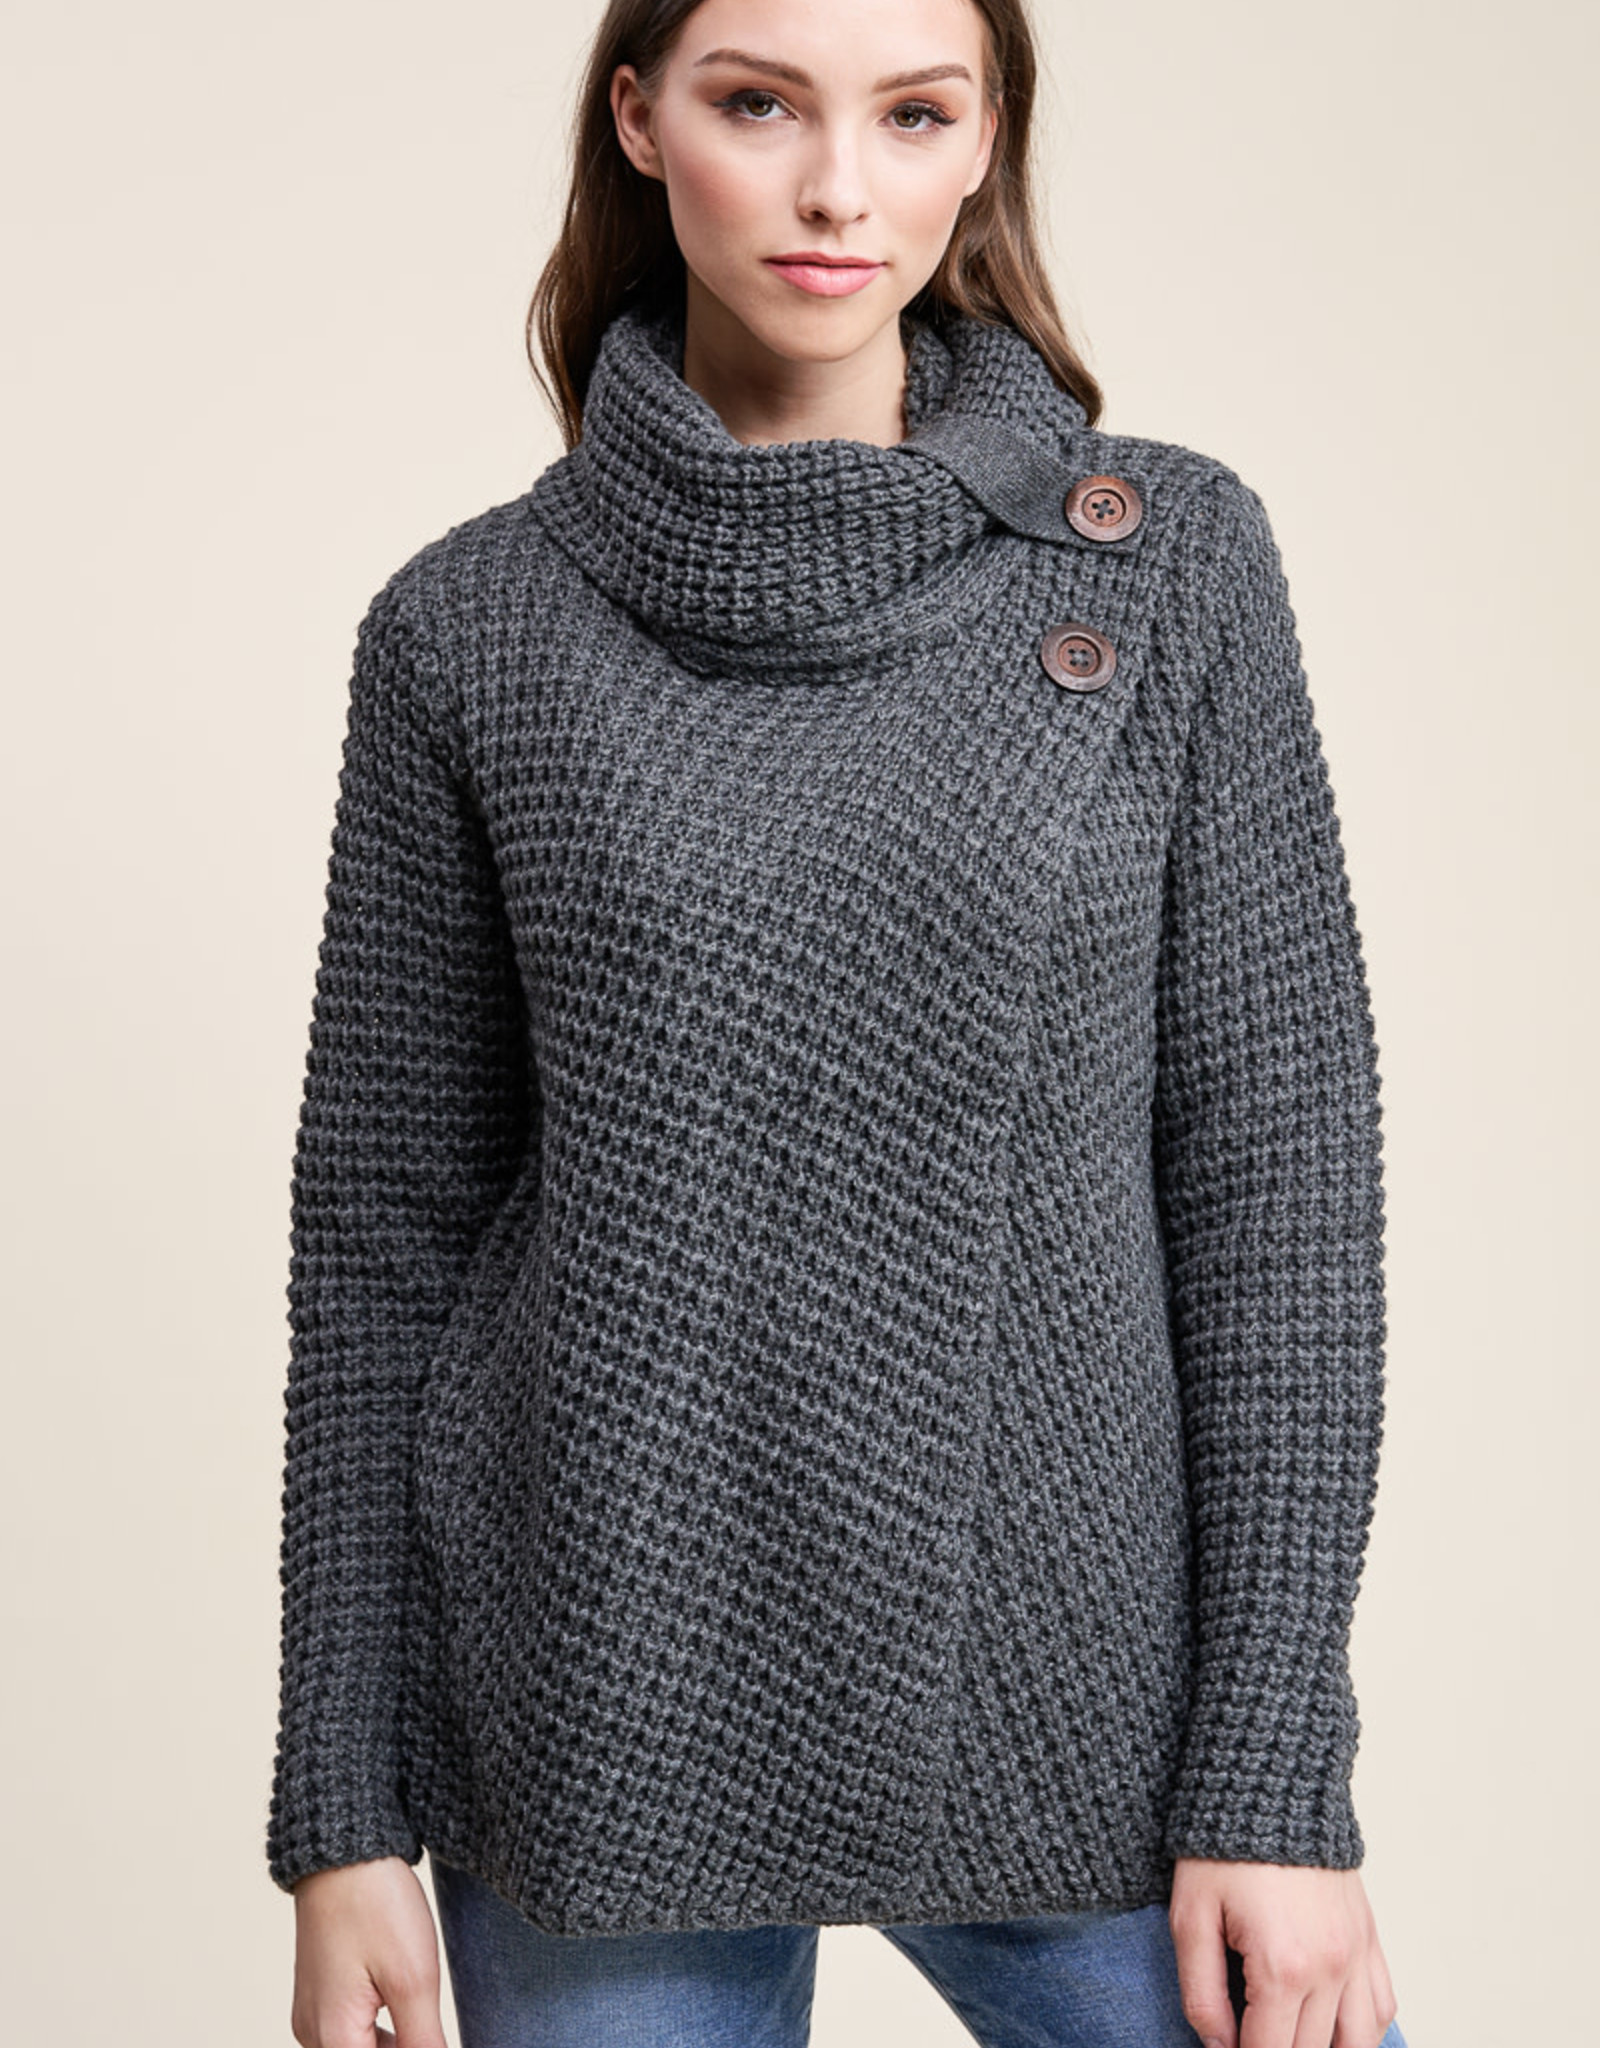 Turtleneck Sweater with Button Detail